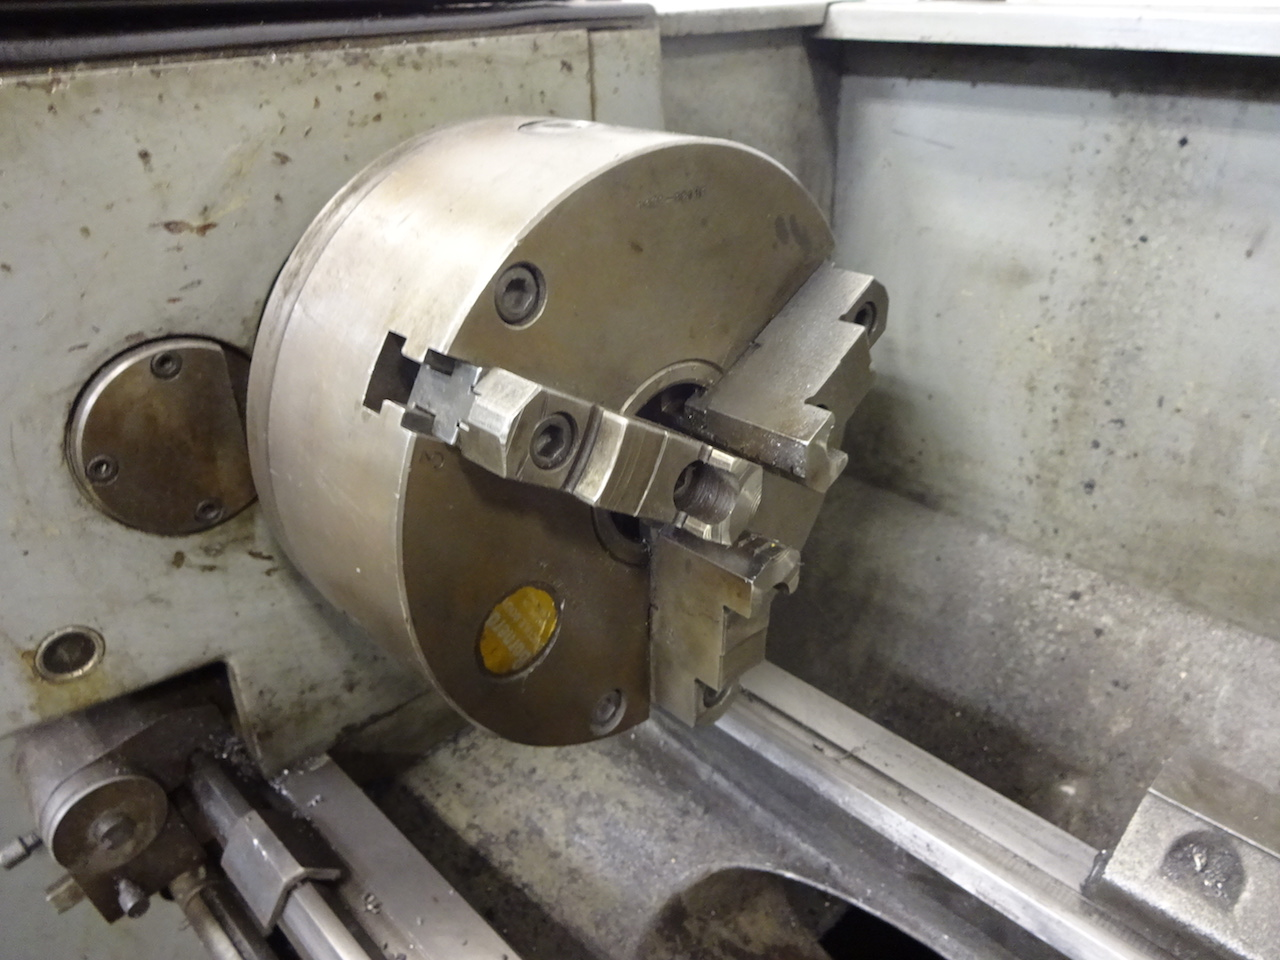 Lot 50 - Clausing 13 in. x 36 in. Model 1300 Engine Lathe, S/N 130559, 10 in. 4-Jaw Chuck, 8 in. 3-Jaw Chuck,